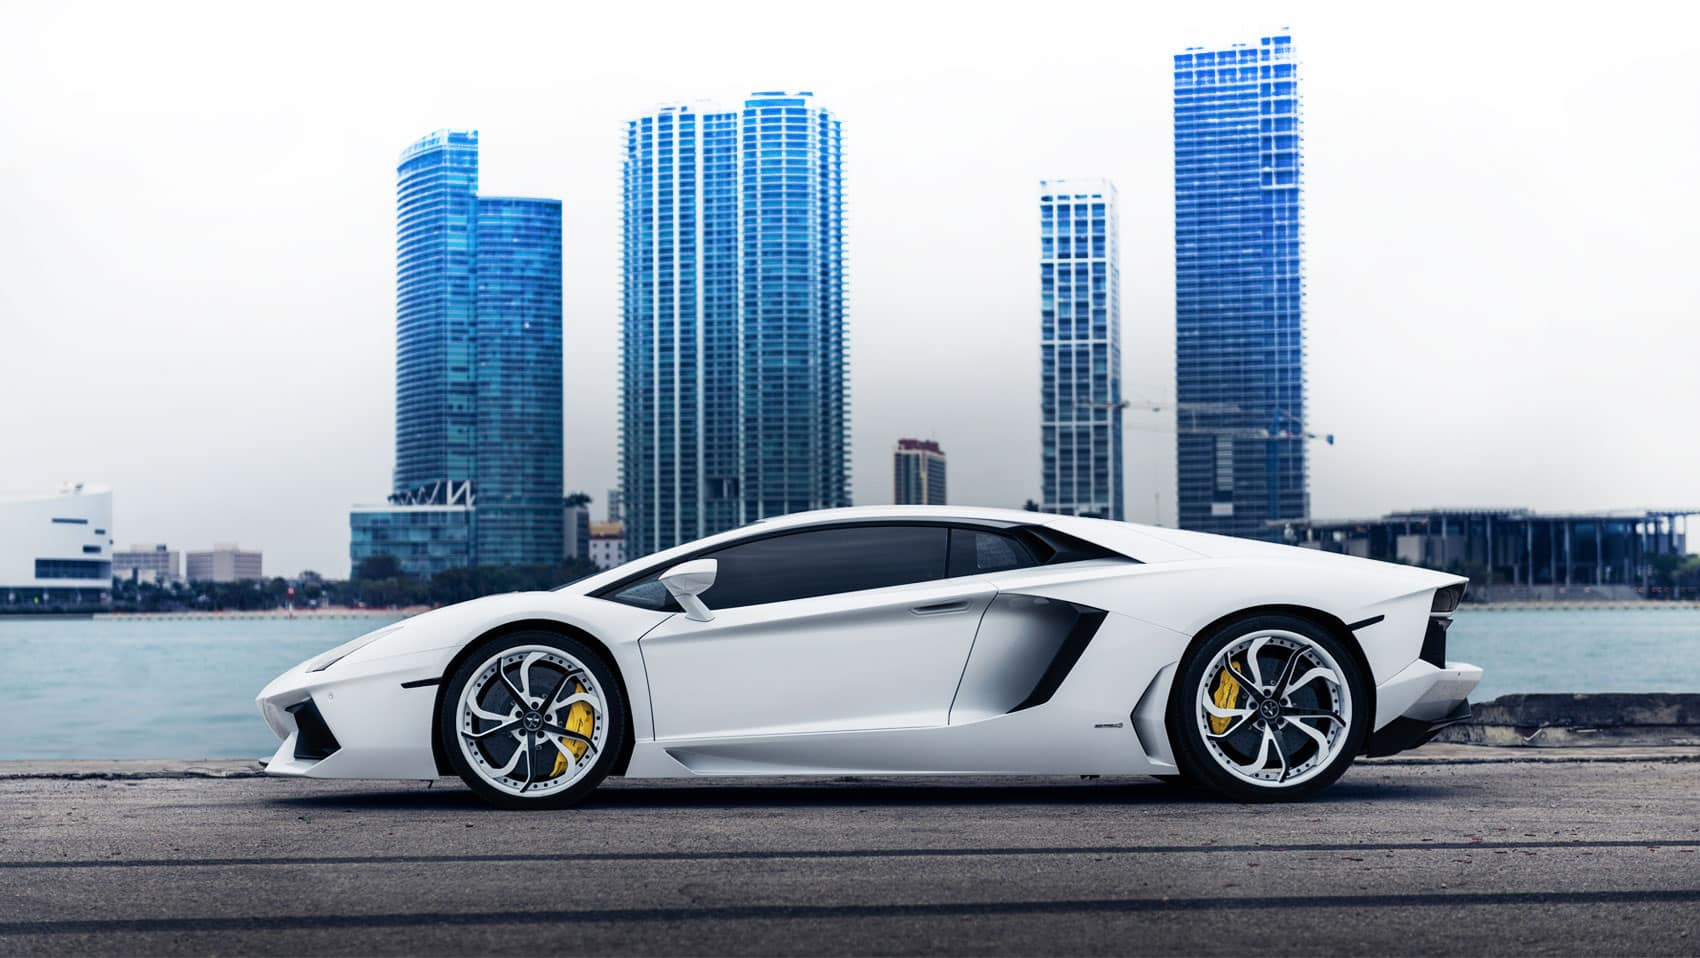 dubai rent rentals lamborghini vegas cars a in las luxury